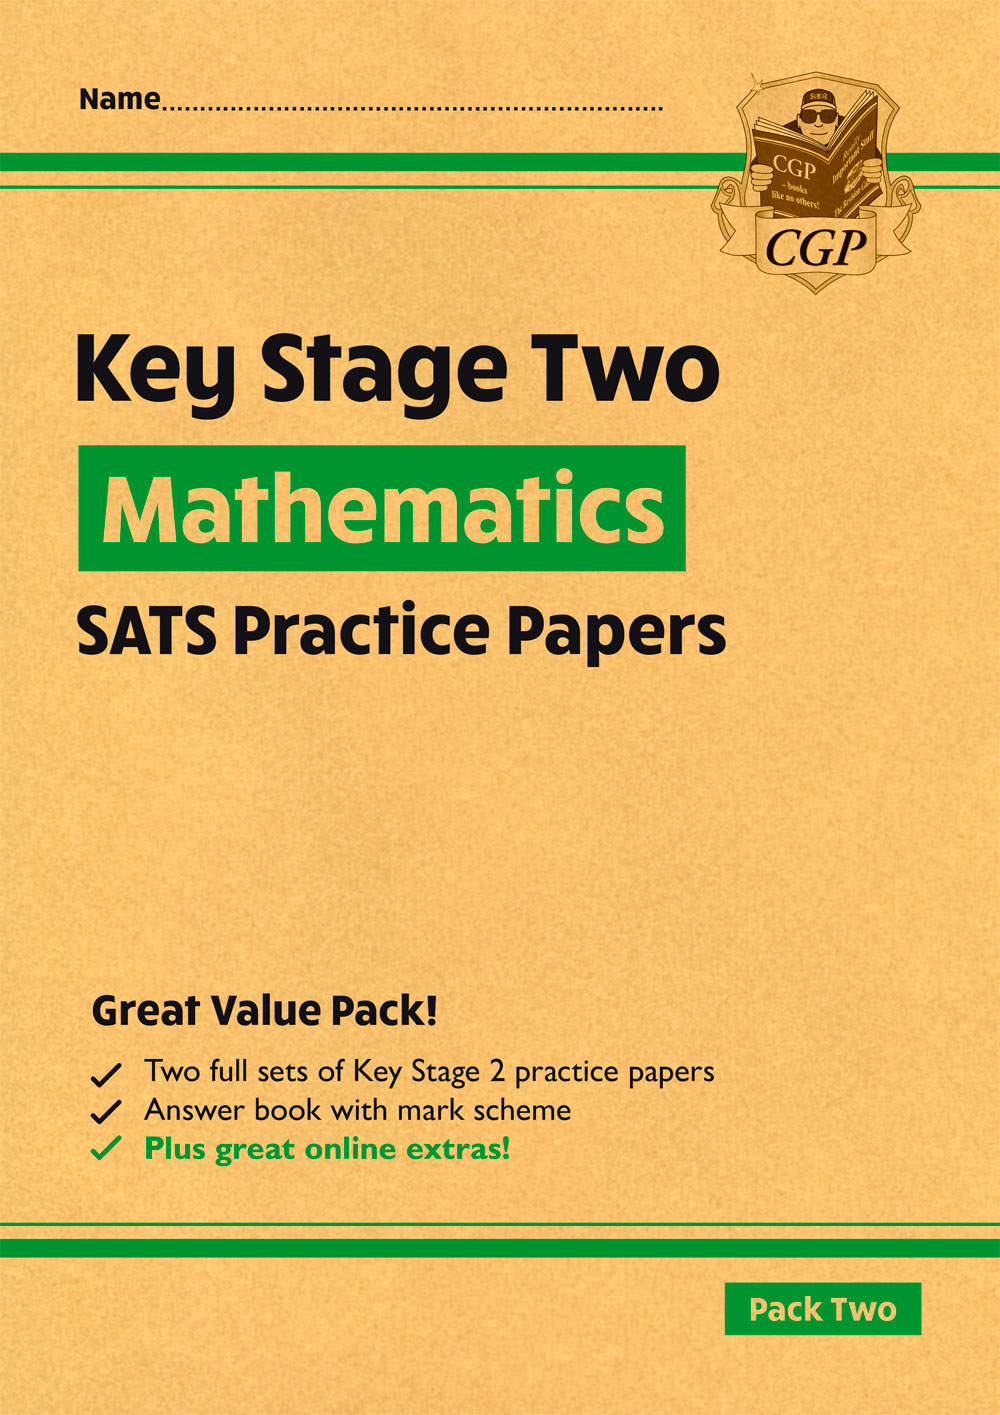 MHGP28 - New KS2 Maths SATS Practice Papers: Pack 2 - for the 2021 tests (with free Online Extras)